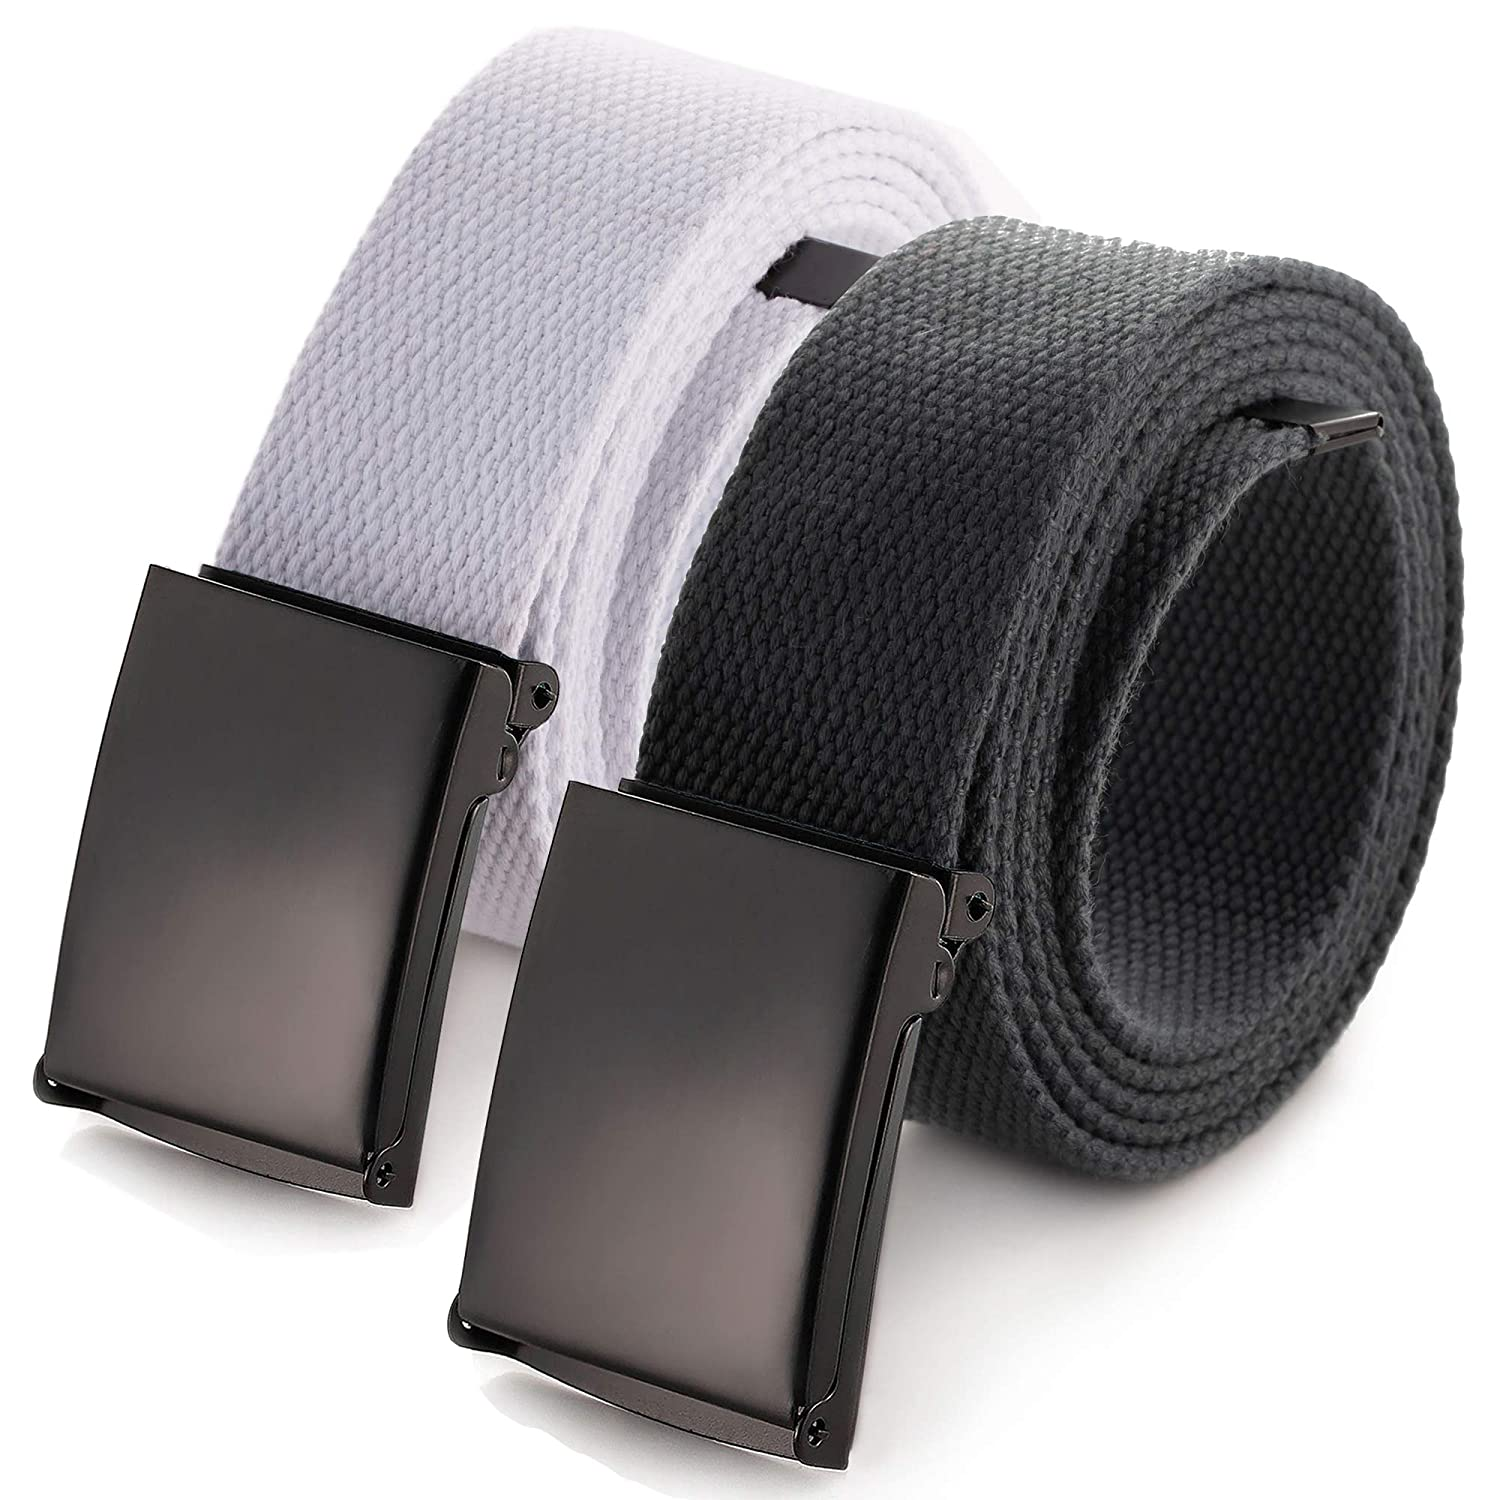 Outdoor Sports Casual Belt, Canvas Web belt Waist Flip-Top Solid Black Buckle Up to 56 (Black) Universal Promotions